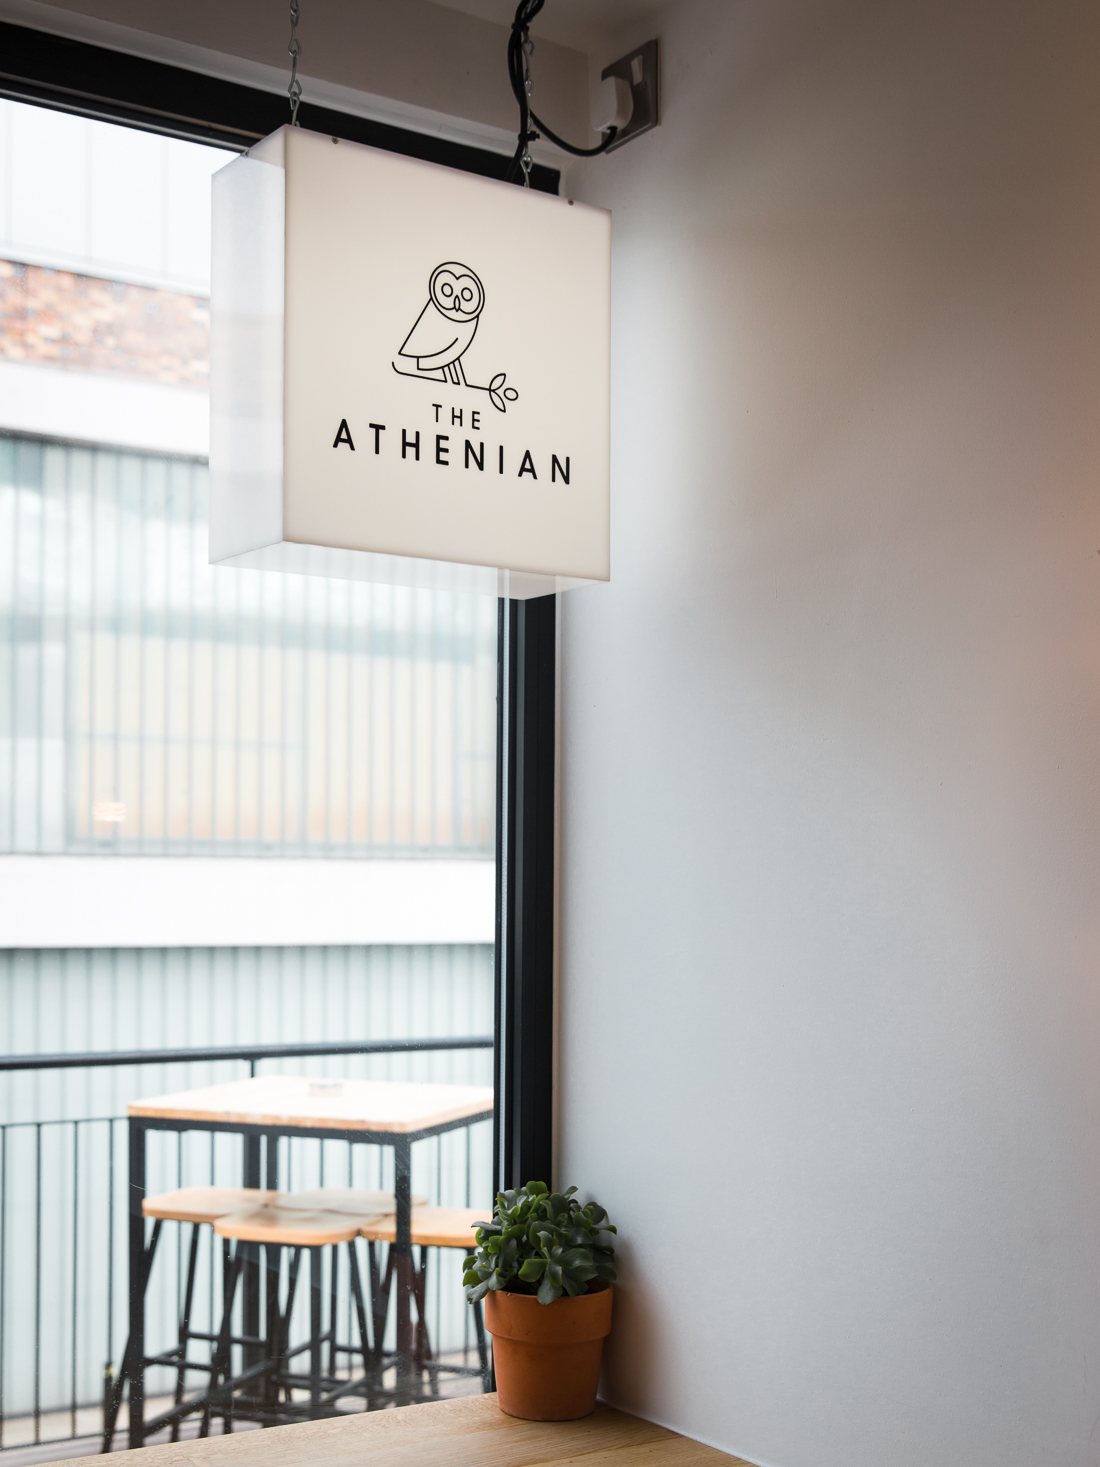 The Athenian, Bristol